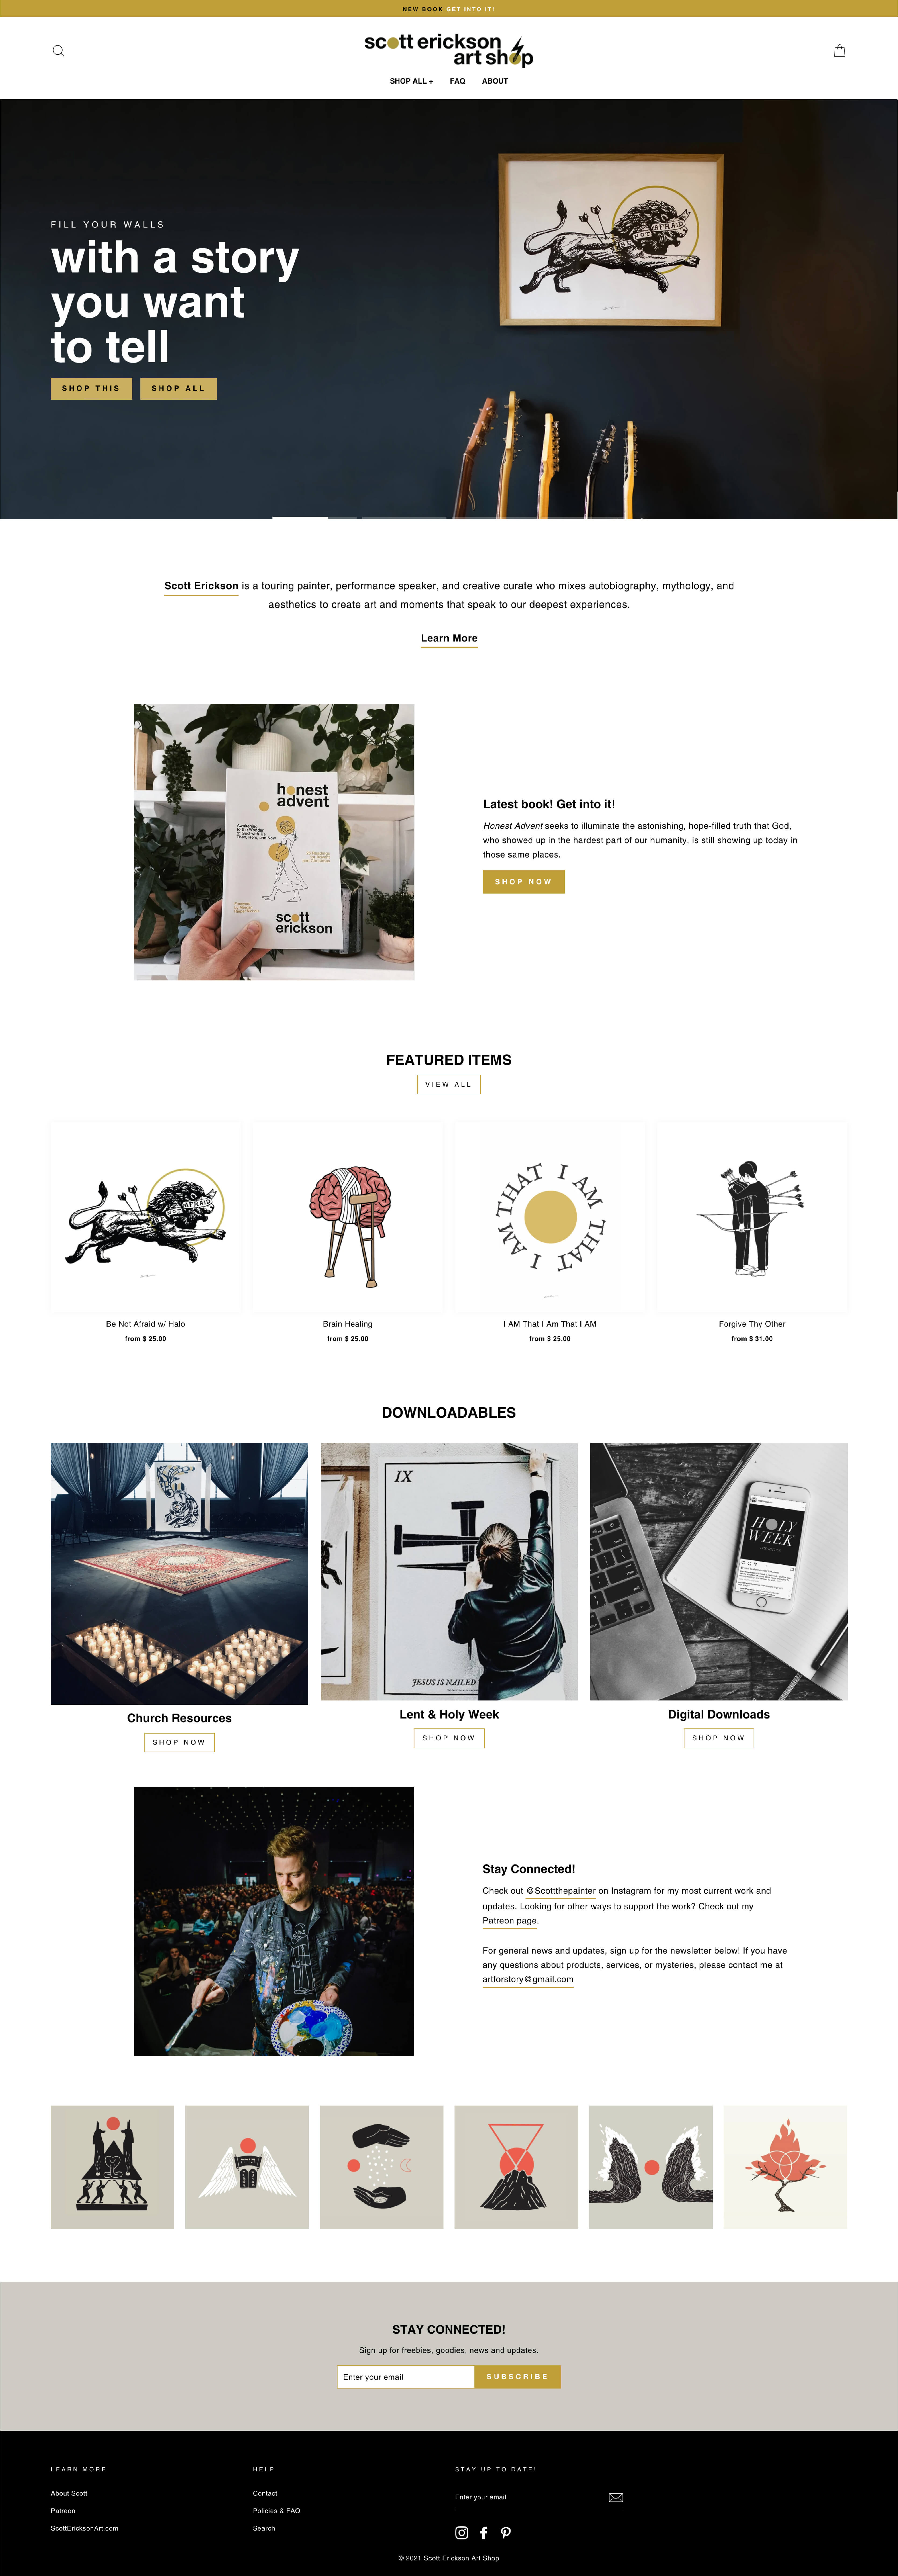 Home page web design layout for Scott Erickson Art Shop by Camille Zyniewicz.